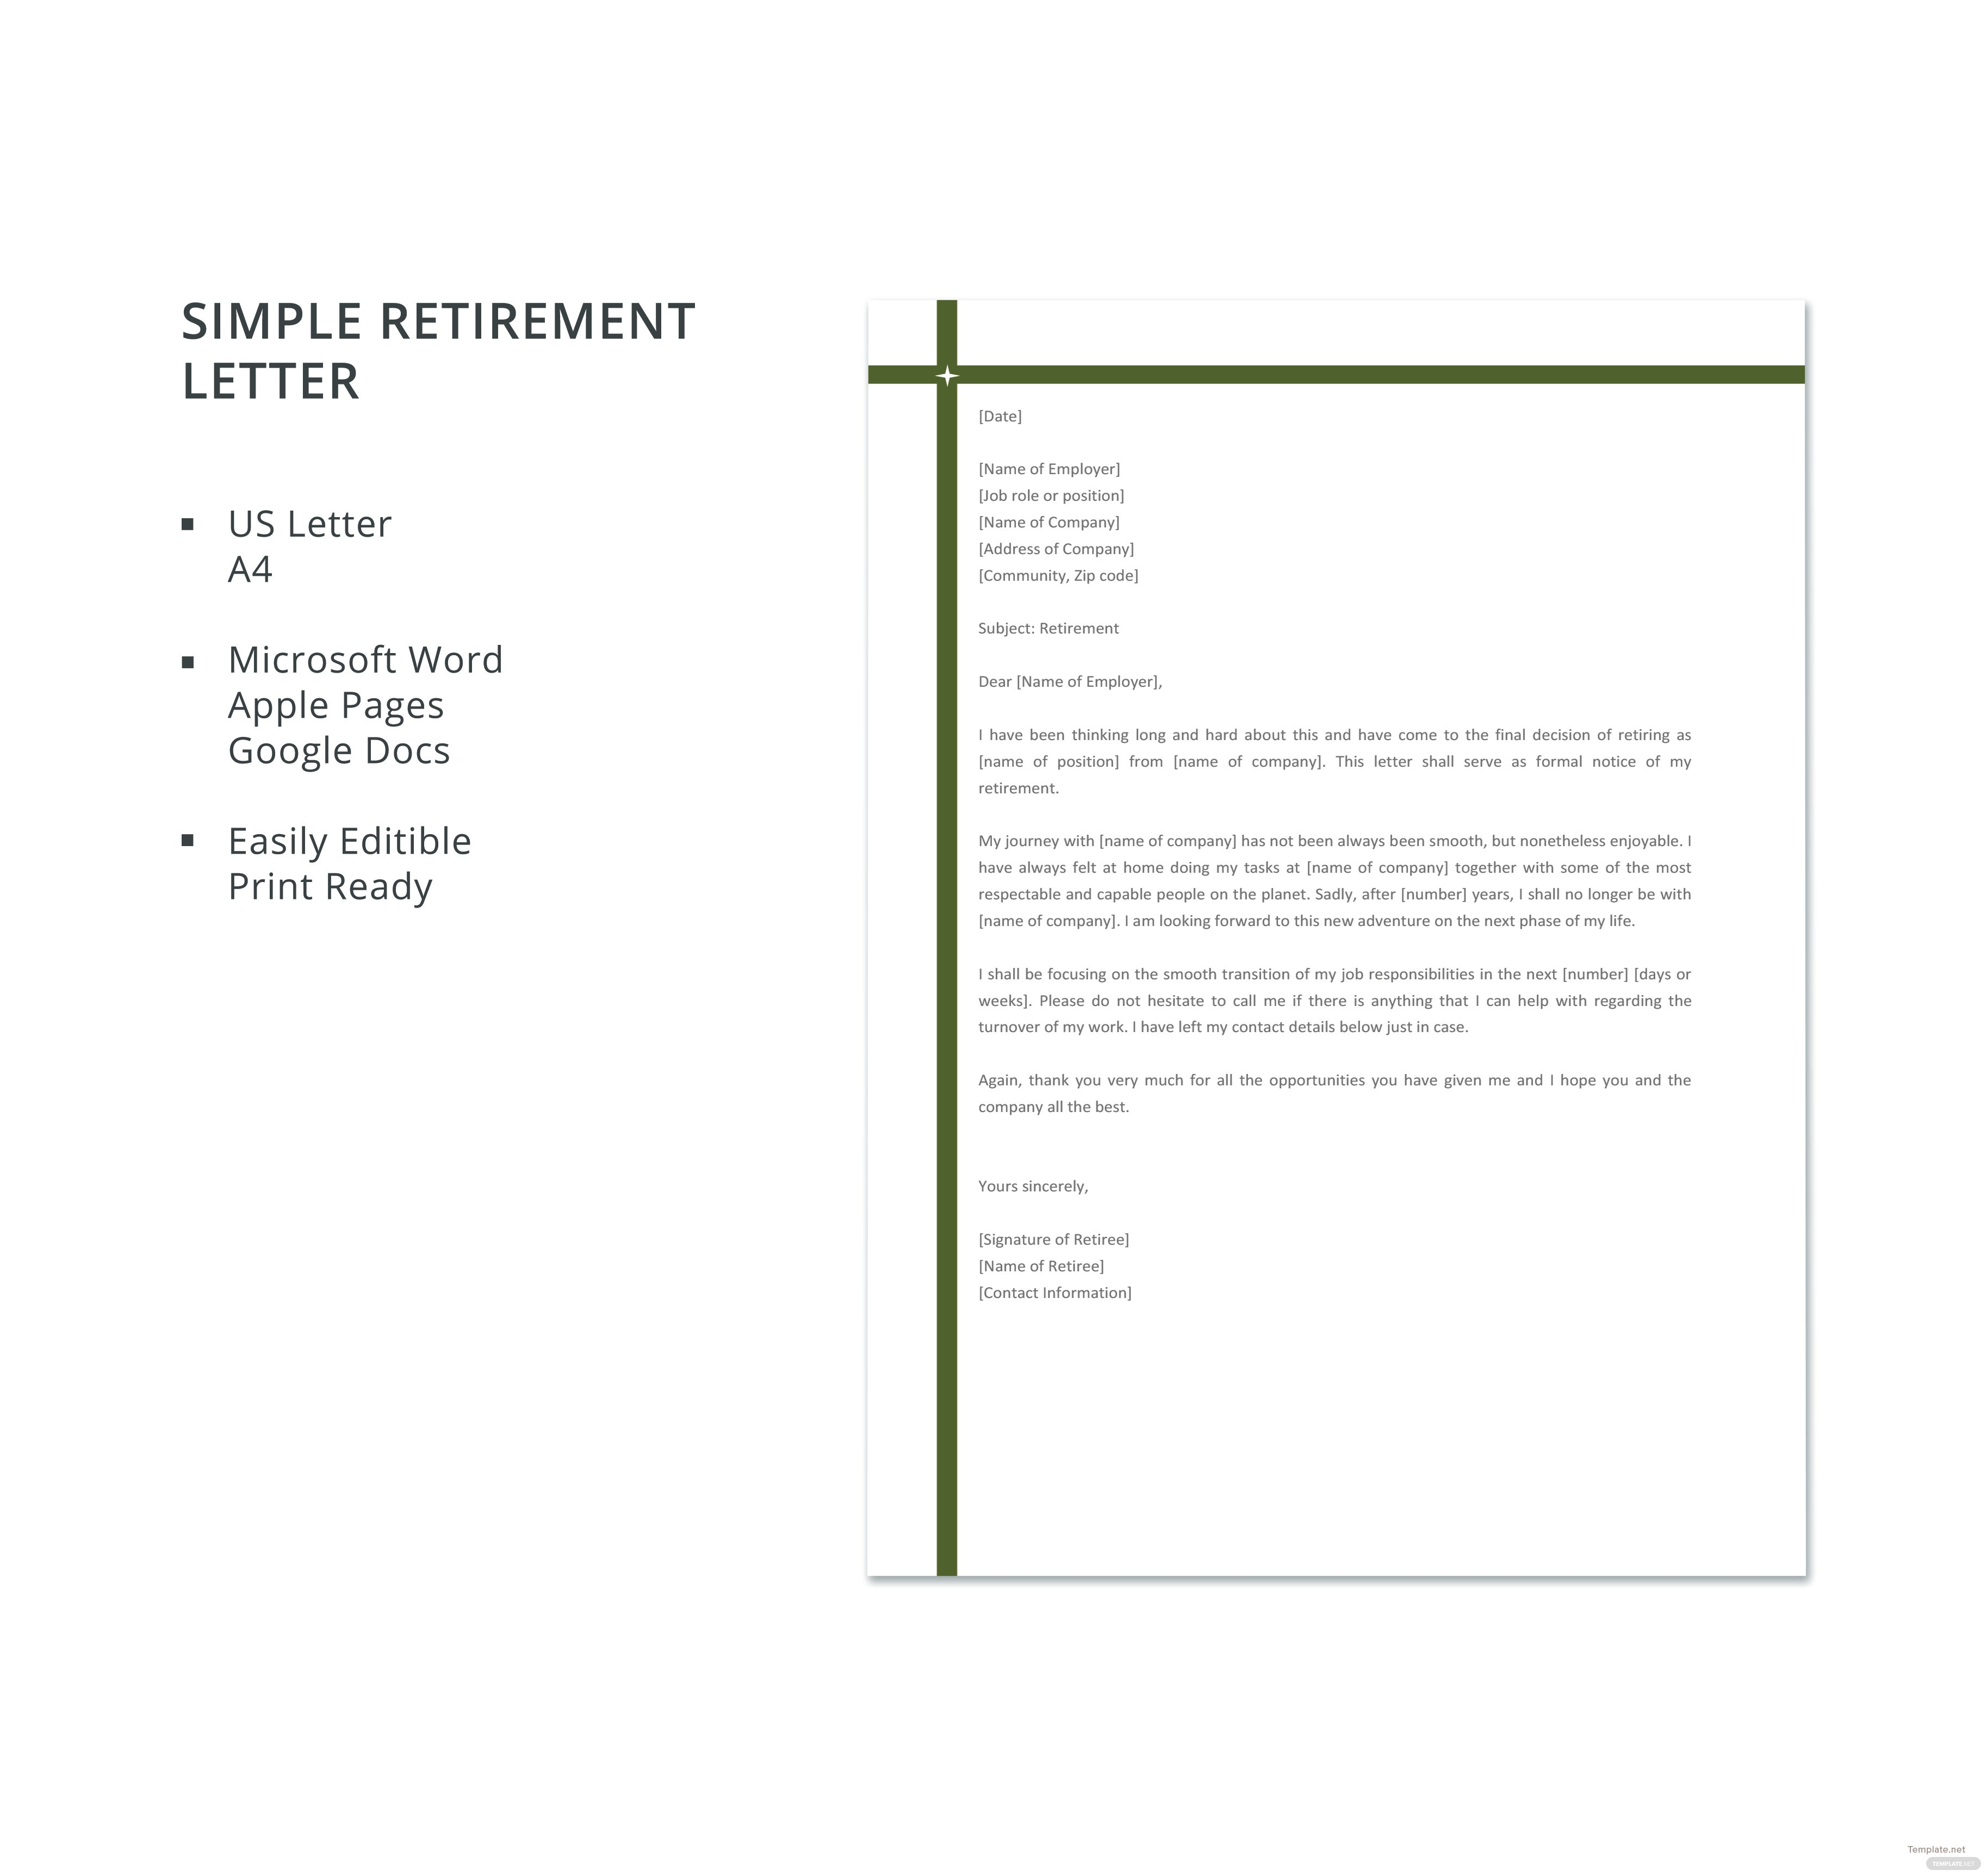 Simple retirement letter template in microsoft word apple pages simple retirement letter template spiritdancerdesigns Choice Image